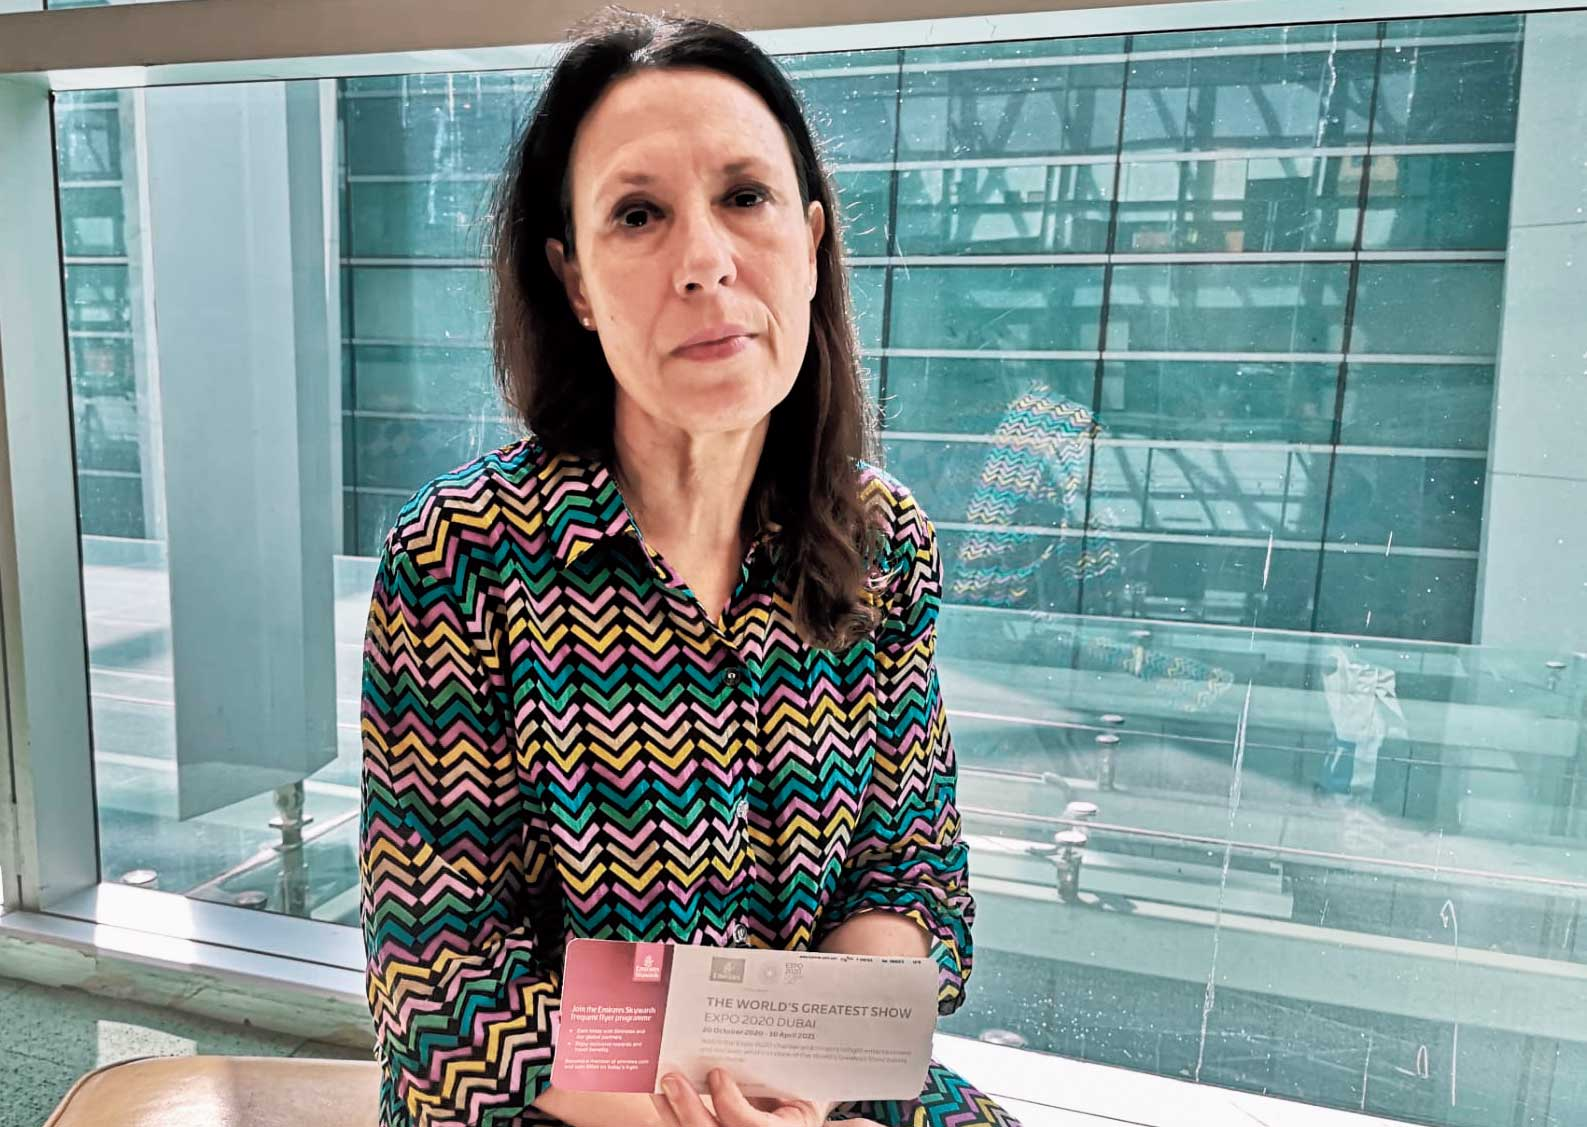 Debbie Abrahams at Delhi airport on Monday. This photograph was given to the Associated Press (AP) by Harpreet Upal, an aide accompanying the British MP